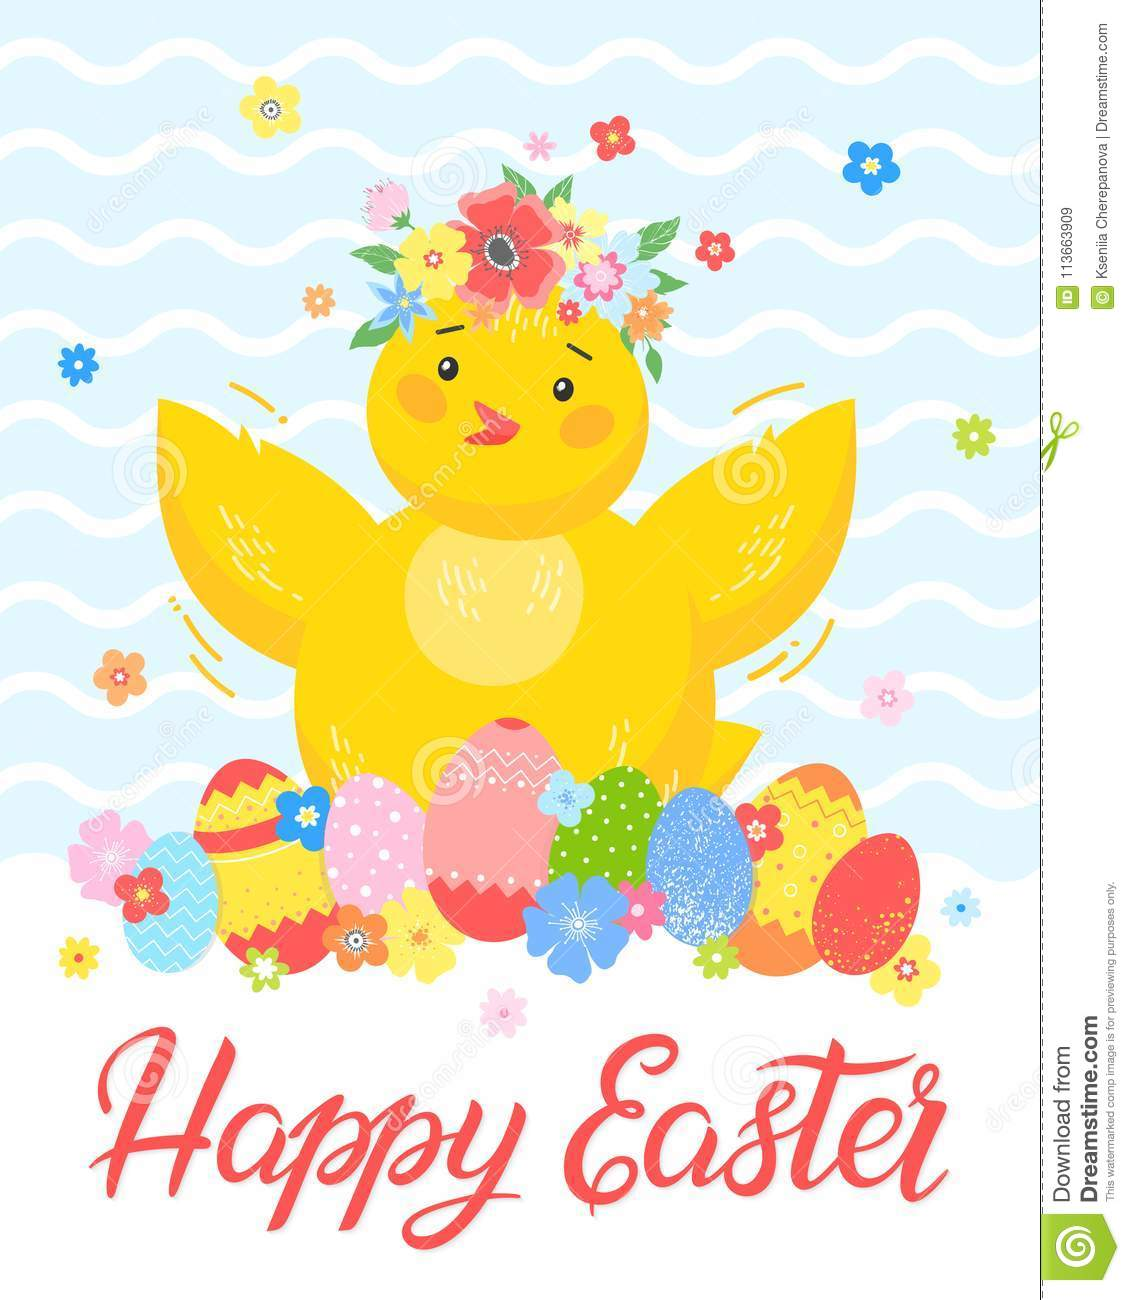 Easter seasons greetings card stock illustration illustration of download easter seasons greetings card stock illustration illustration of happy christian 113663909 m4hsunfo